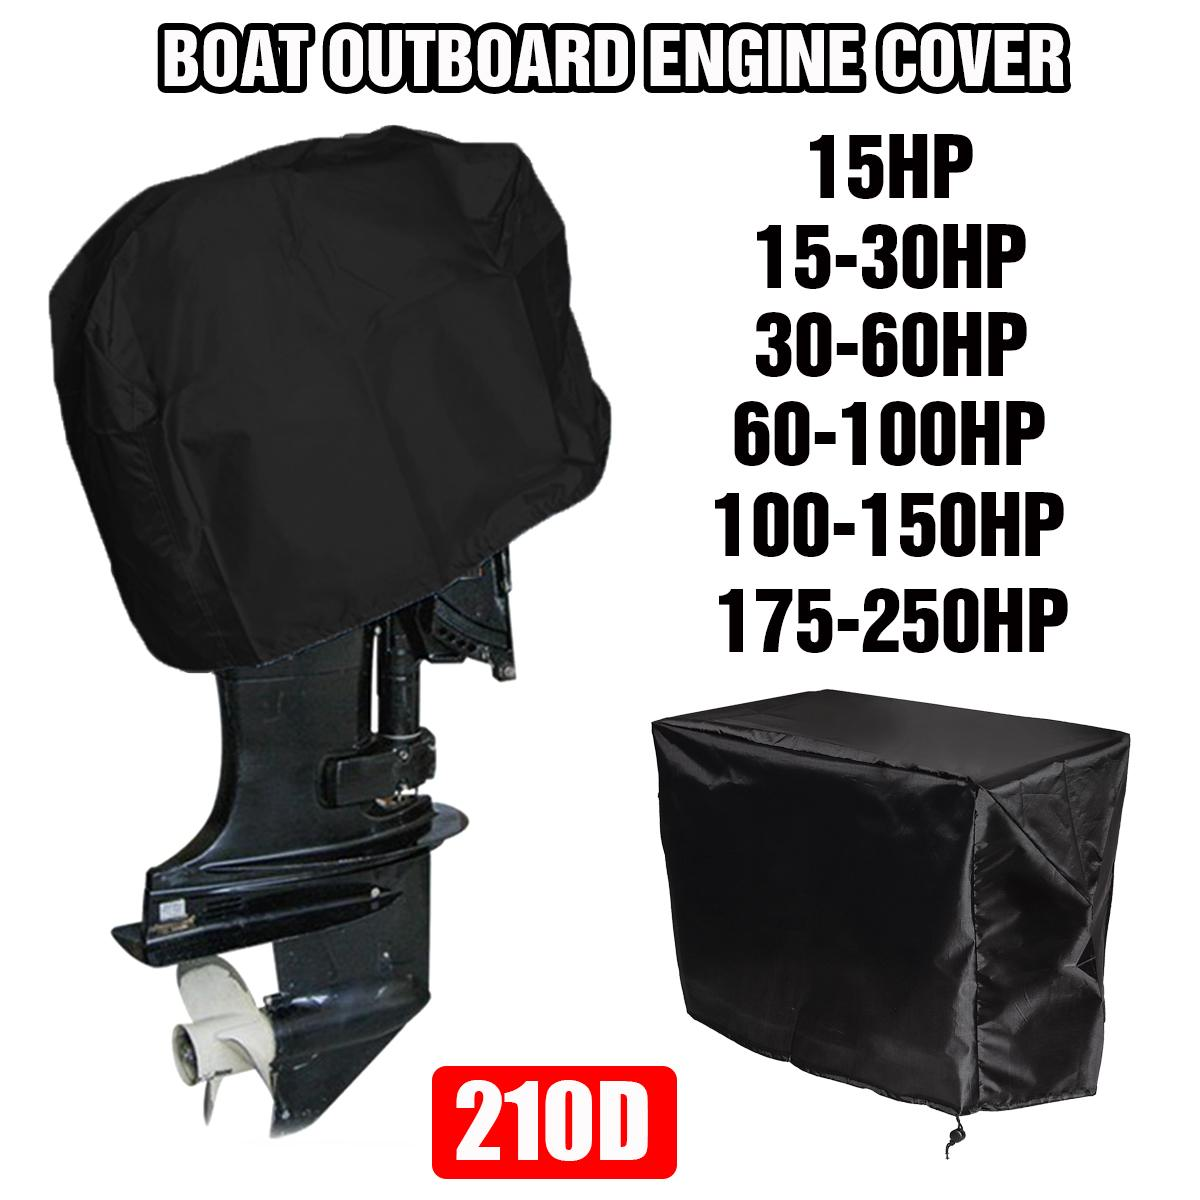 210D Oxford Boat 15-250HP Motor Cover Outboard Engine Protector Covers Waterproof 15 30 60 100 150 170 250 PH Motor Heavy-Duty